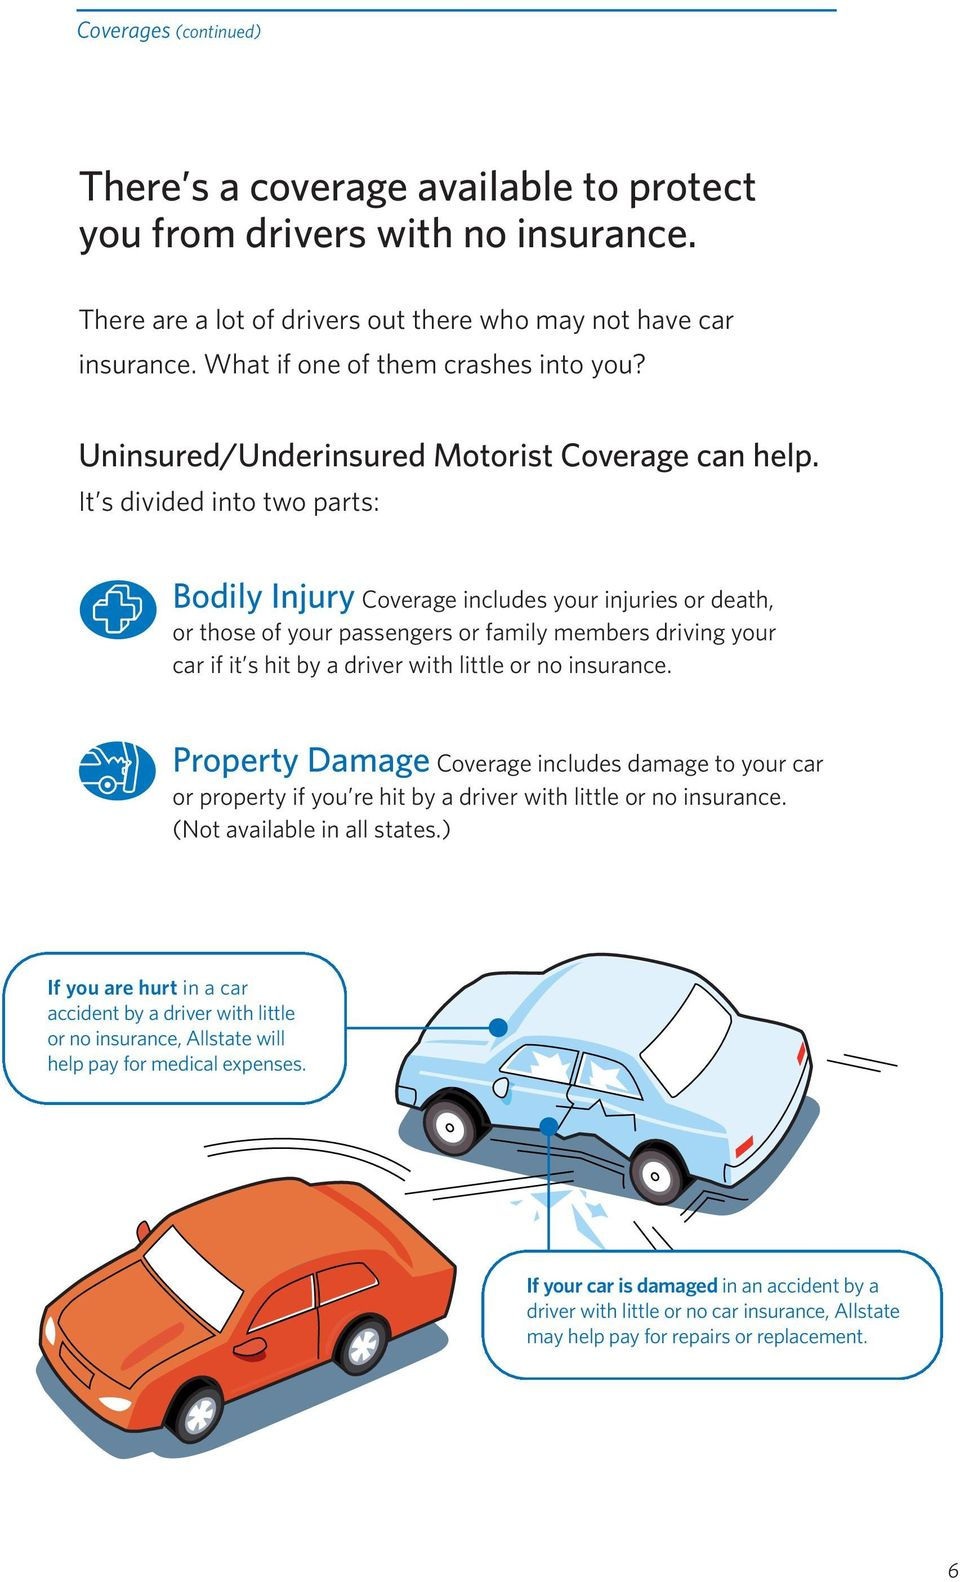 It s divided into two parts: Bodily Injury Coverage includes your injuries or death, or those of your passengers or family members driving your car if it s hit by a driver with little or no insurance.